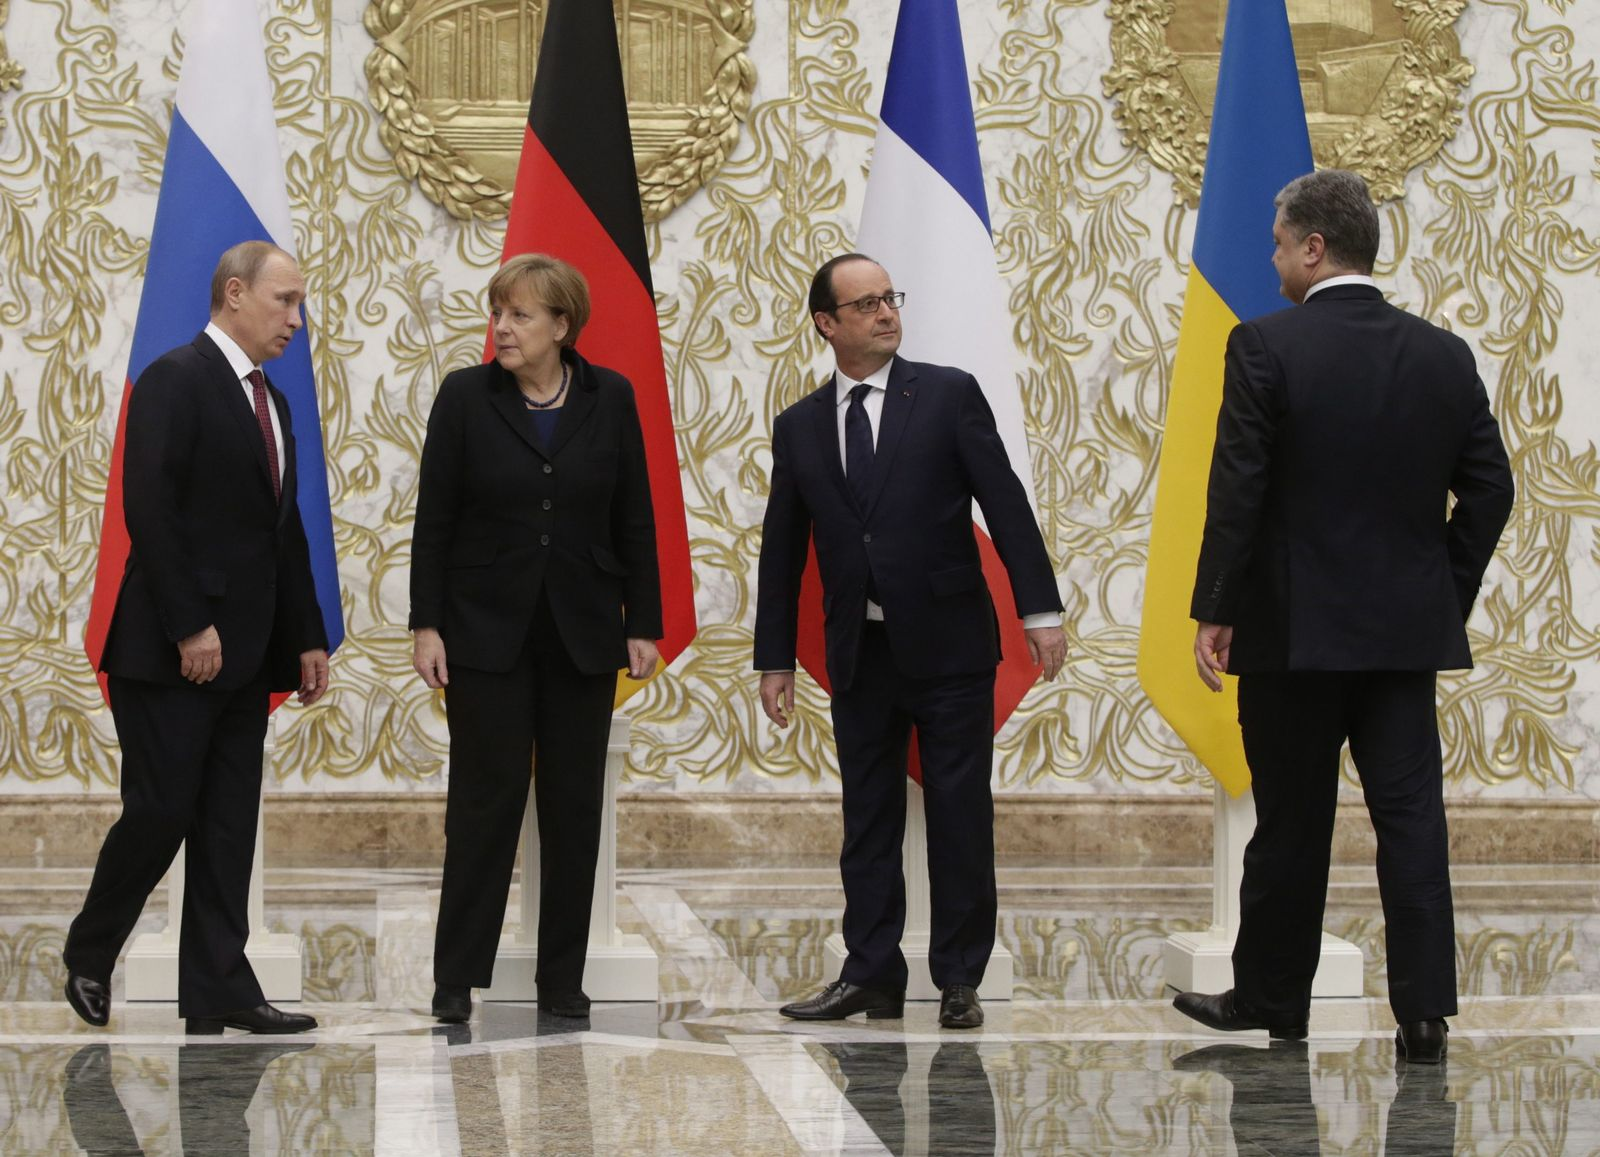 Ukraine peace negotiations in Minsk